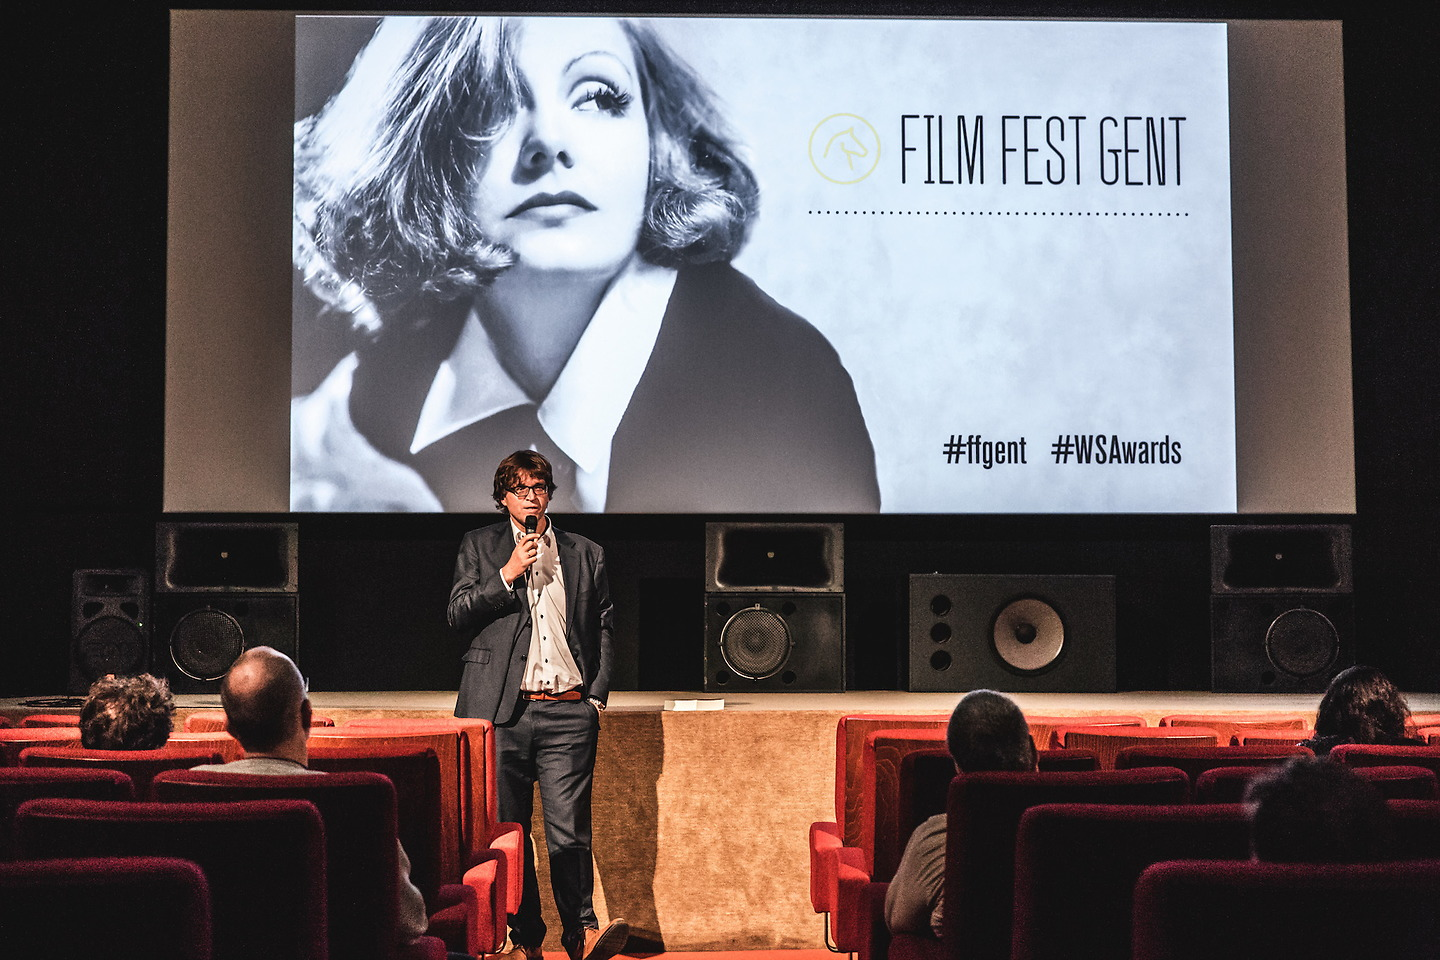 Film Fest Gent - Queen Christina